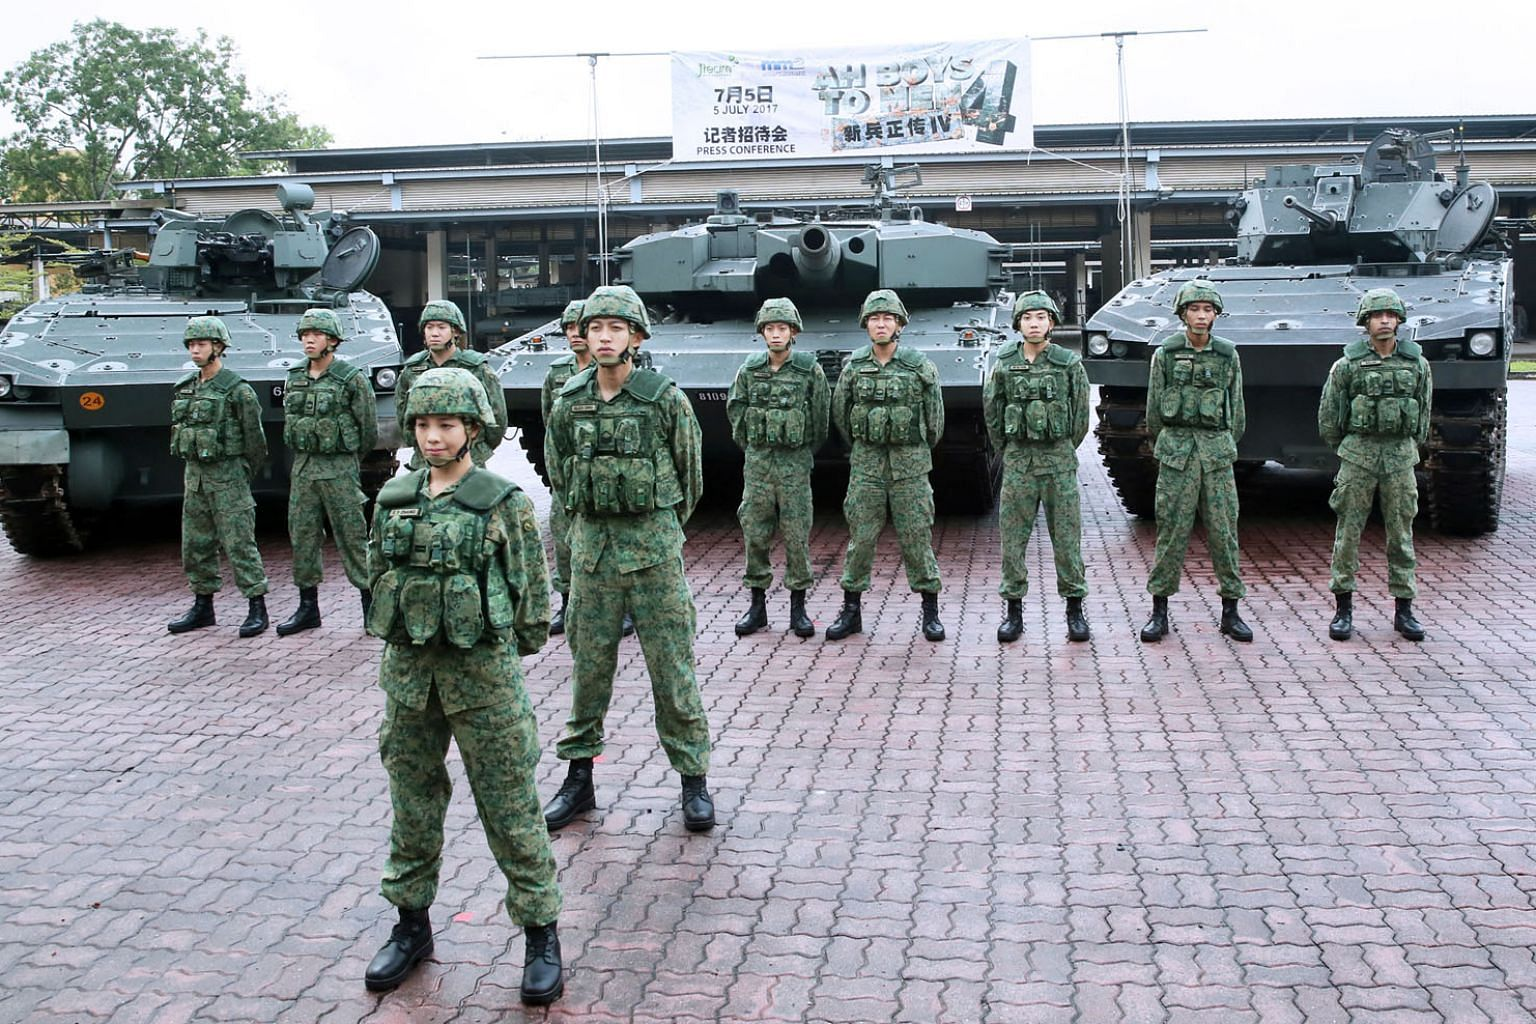 Actress Apple Chan at Sungei Gedong Camp for the press conference of the movie Ah Boys To Men 4, where she plays an armour unit officer. The latest instalment of the military comedy, due in November, features a woman as a main character for the first time